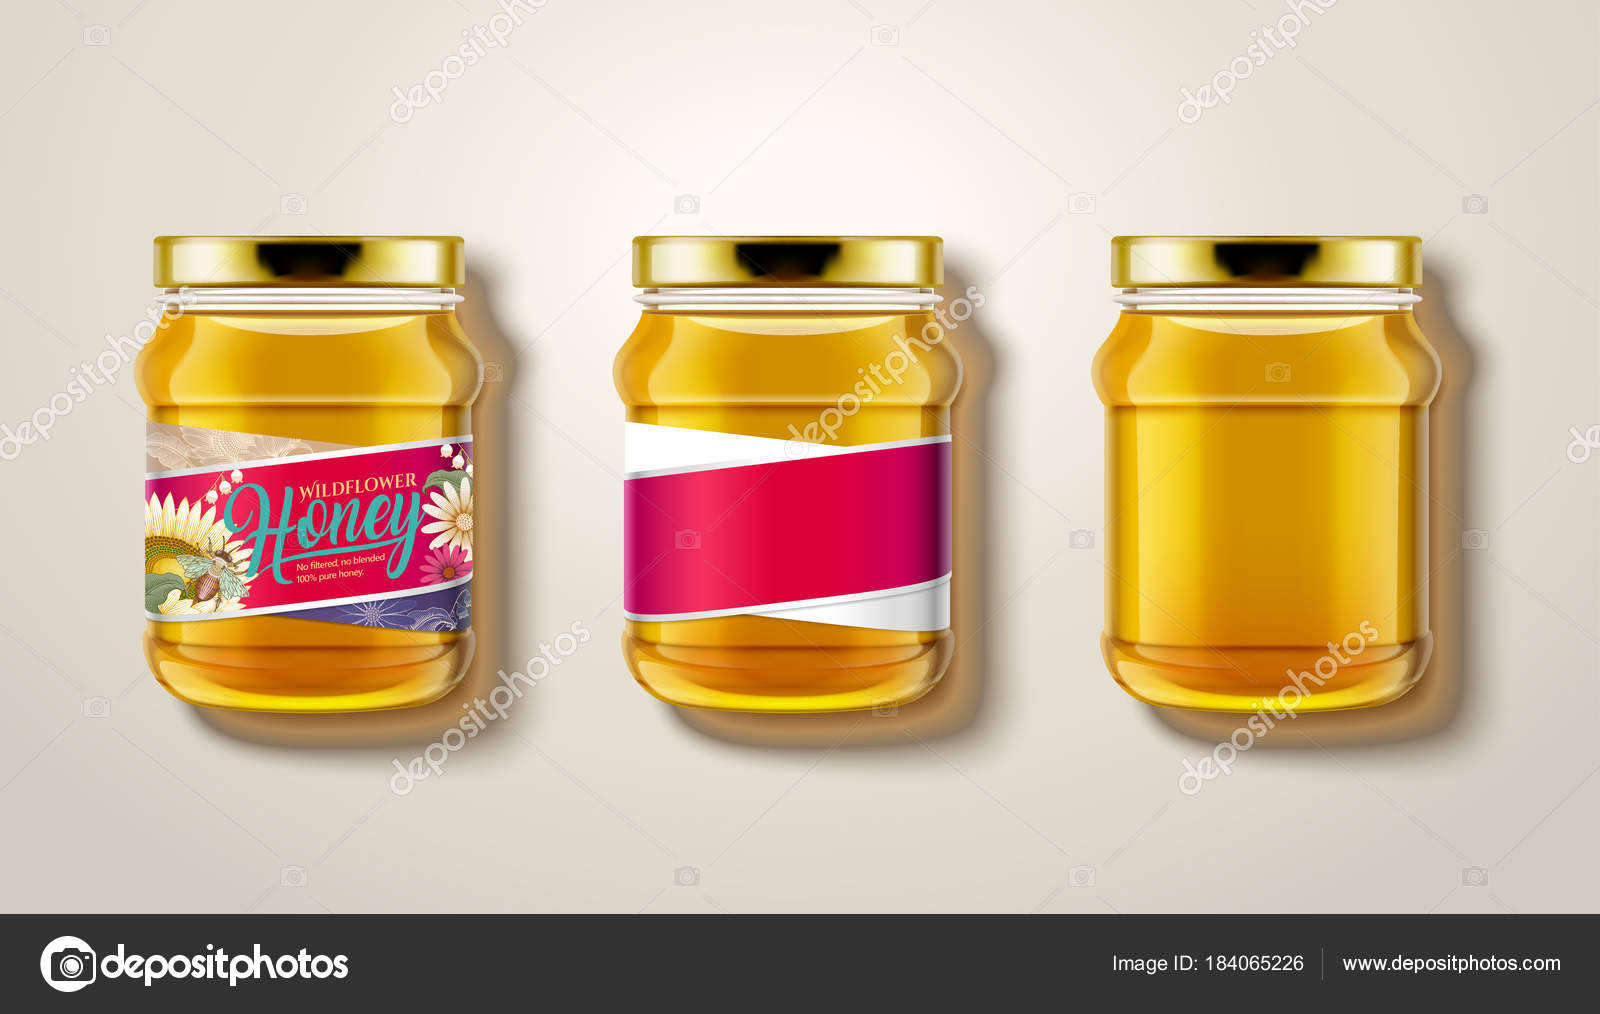 Download Pure Honey Jar Mockup Stock Vector C Kchungtw 184065226 PSD Mockup Templates